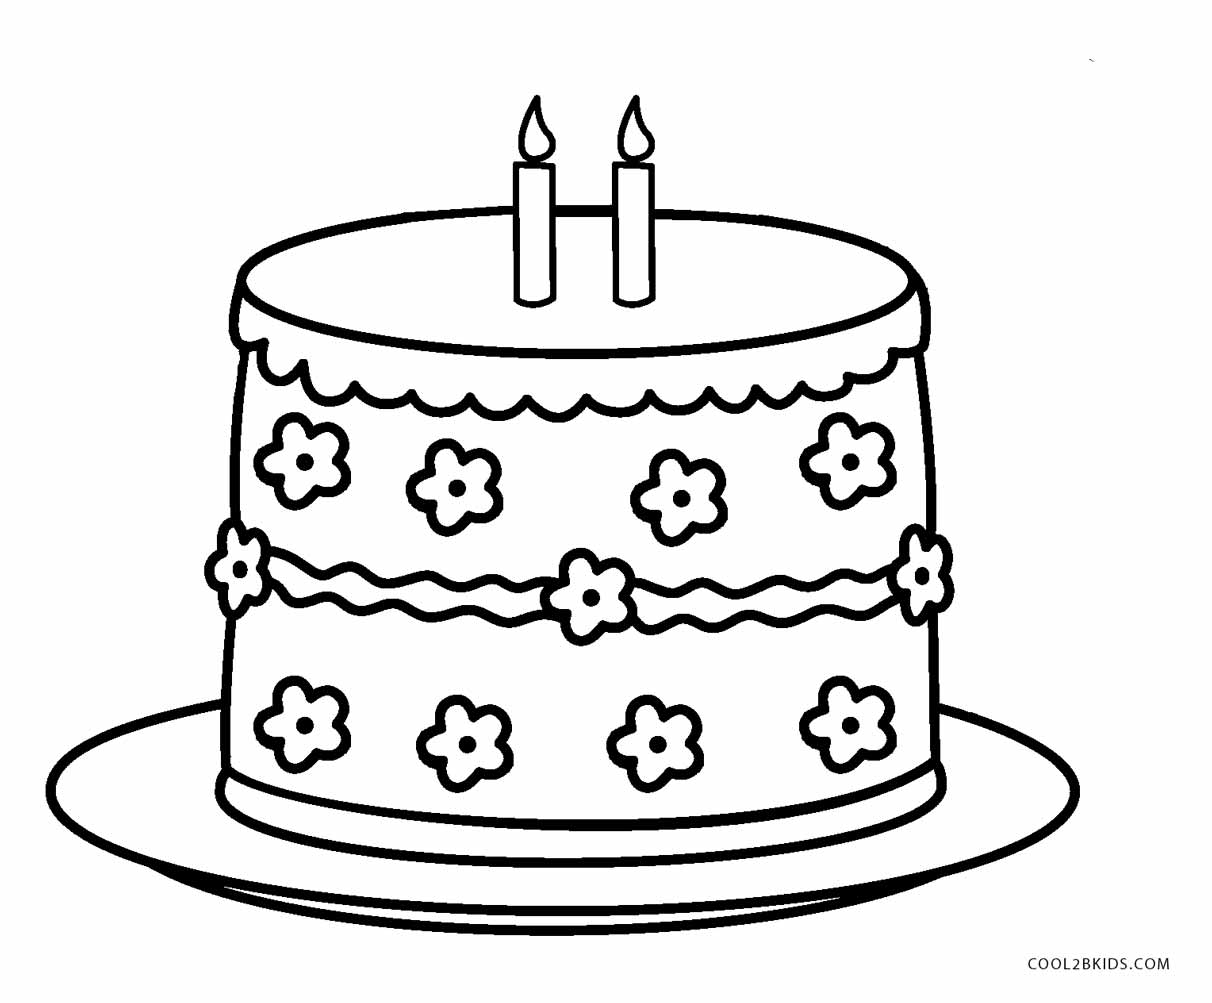 coloring cake for kids cake coloring page coloring home kids for cake coloring